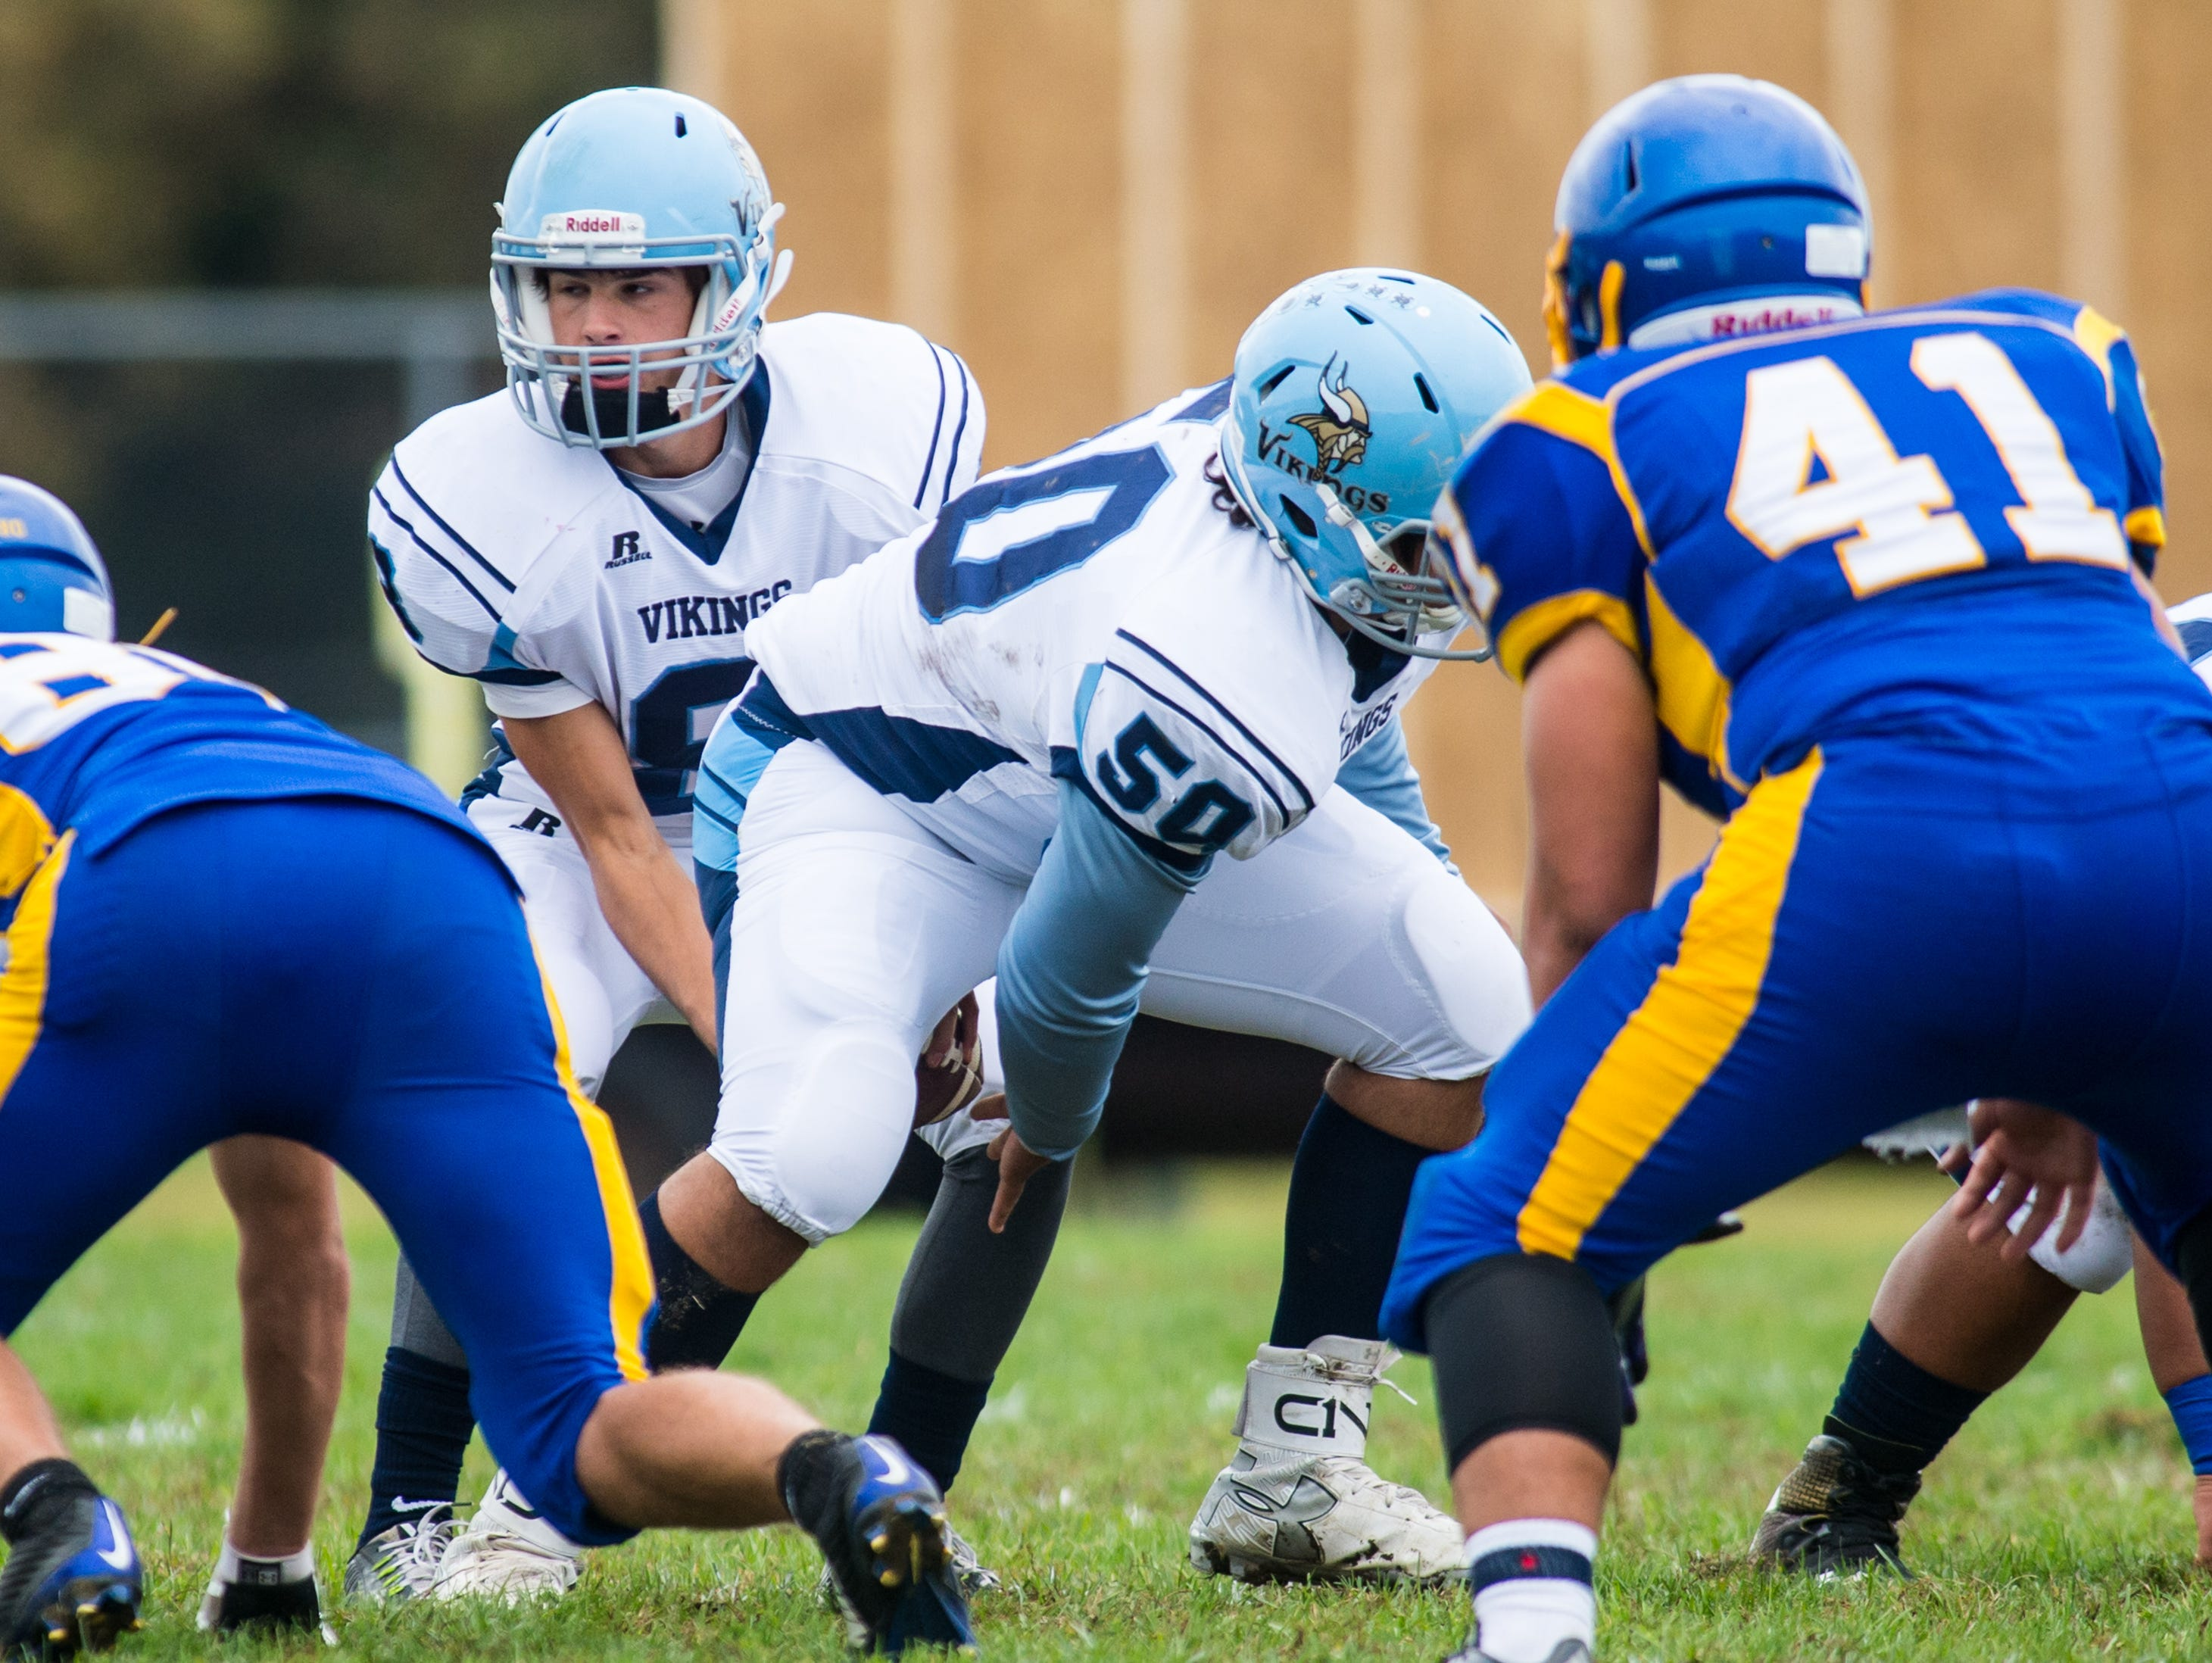 Cape Henlopen center Julian Medina (50) snaps the ball to quarterback Dillon Adams (8) against Sussex Central in Georgetown on Saturday, October 10th.